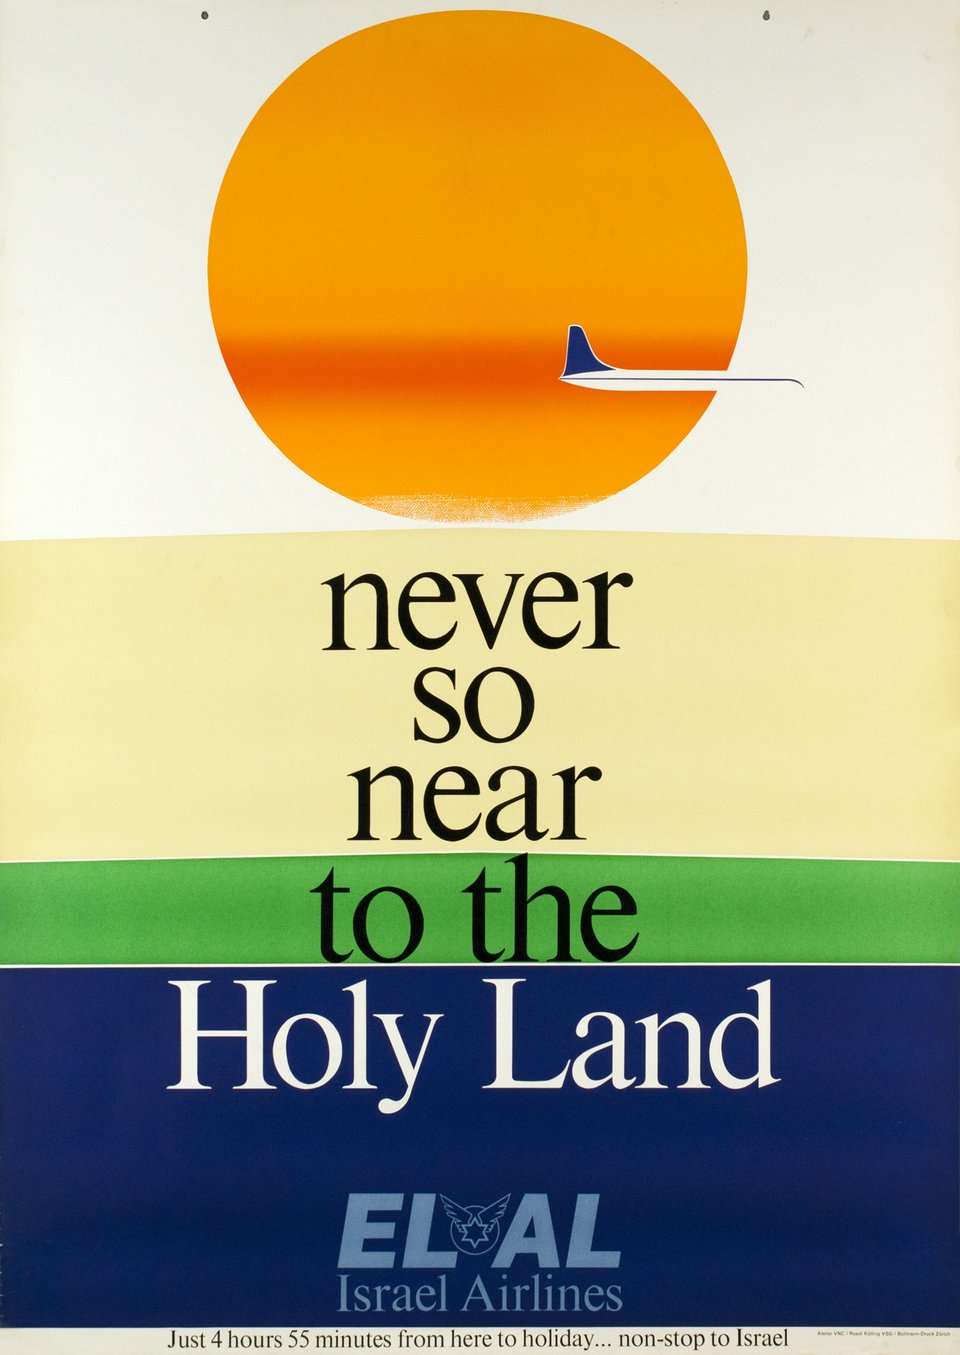 El Al Israël Airlines, never so near to the Holy Land – Affiche ancienne – Ruedi KÜLLING – 1962